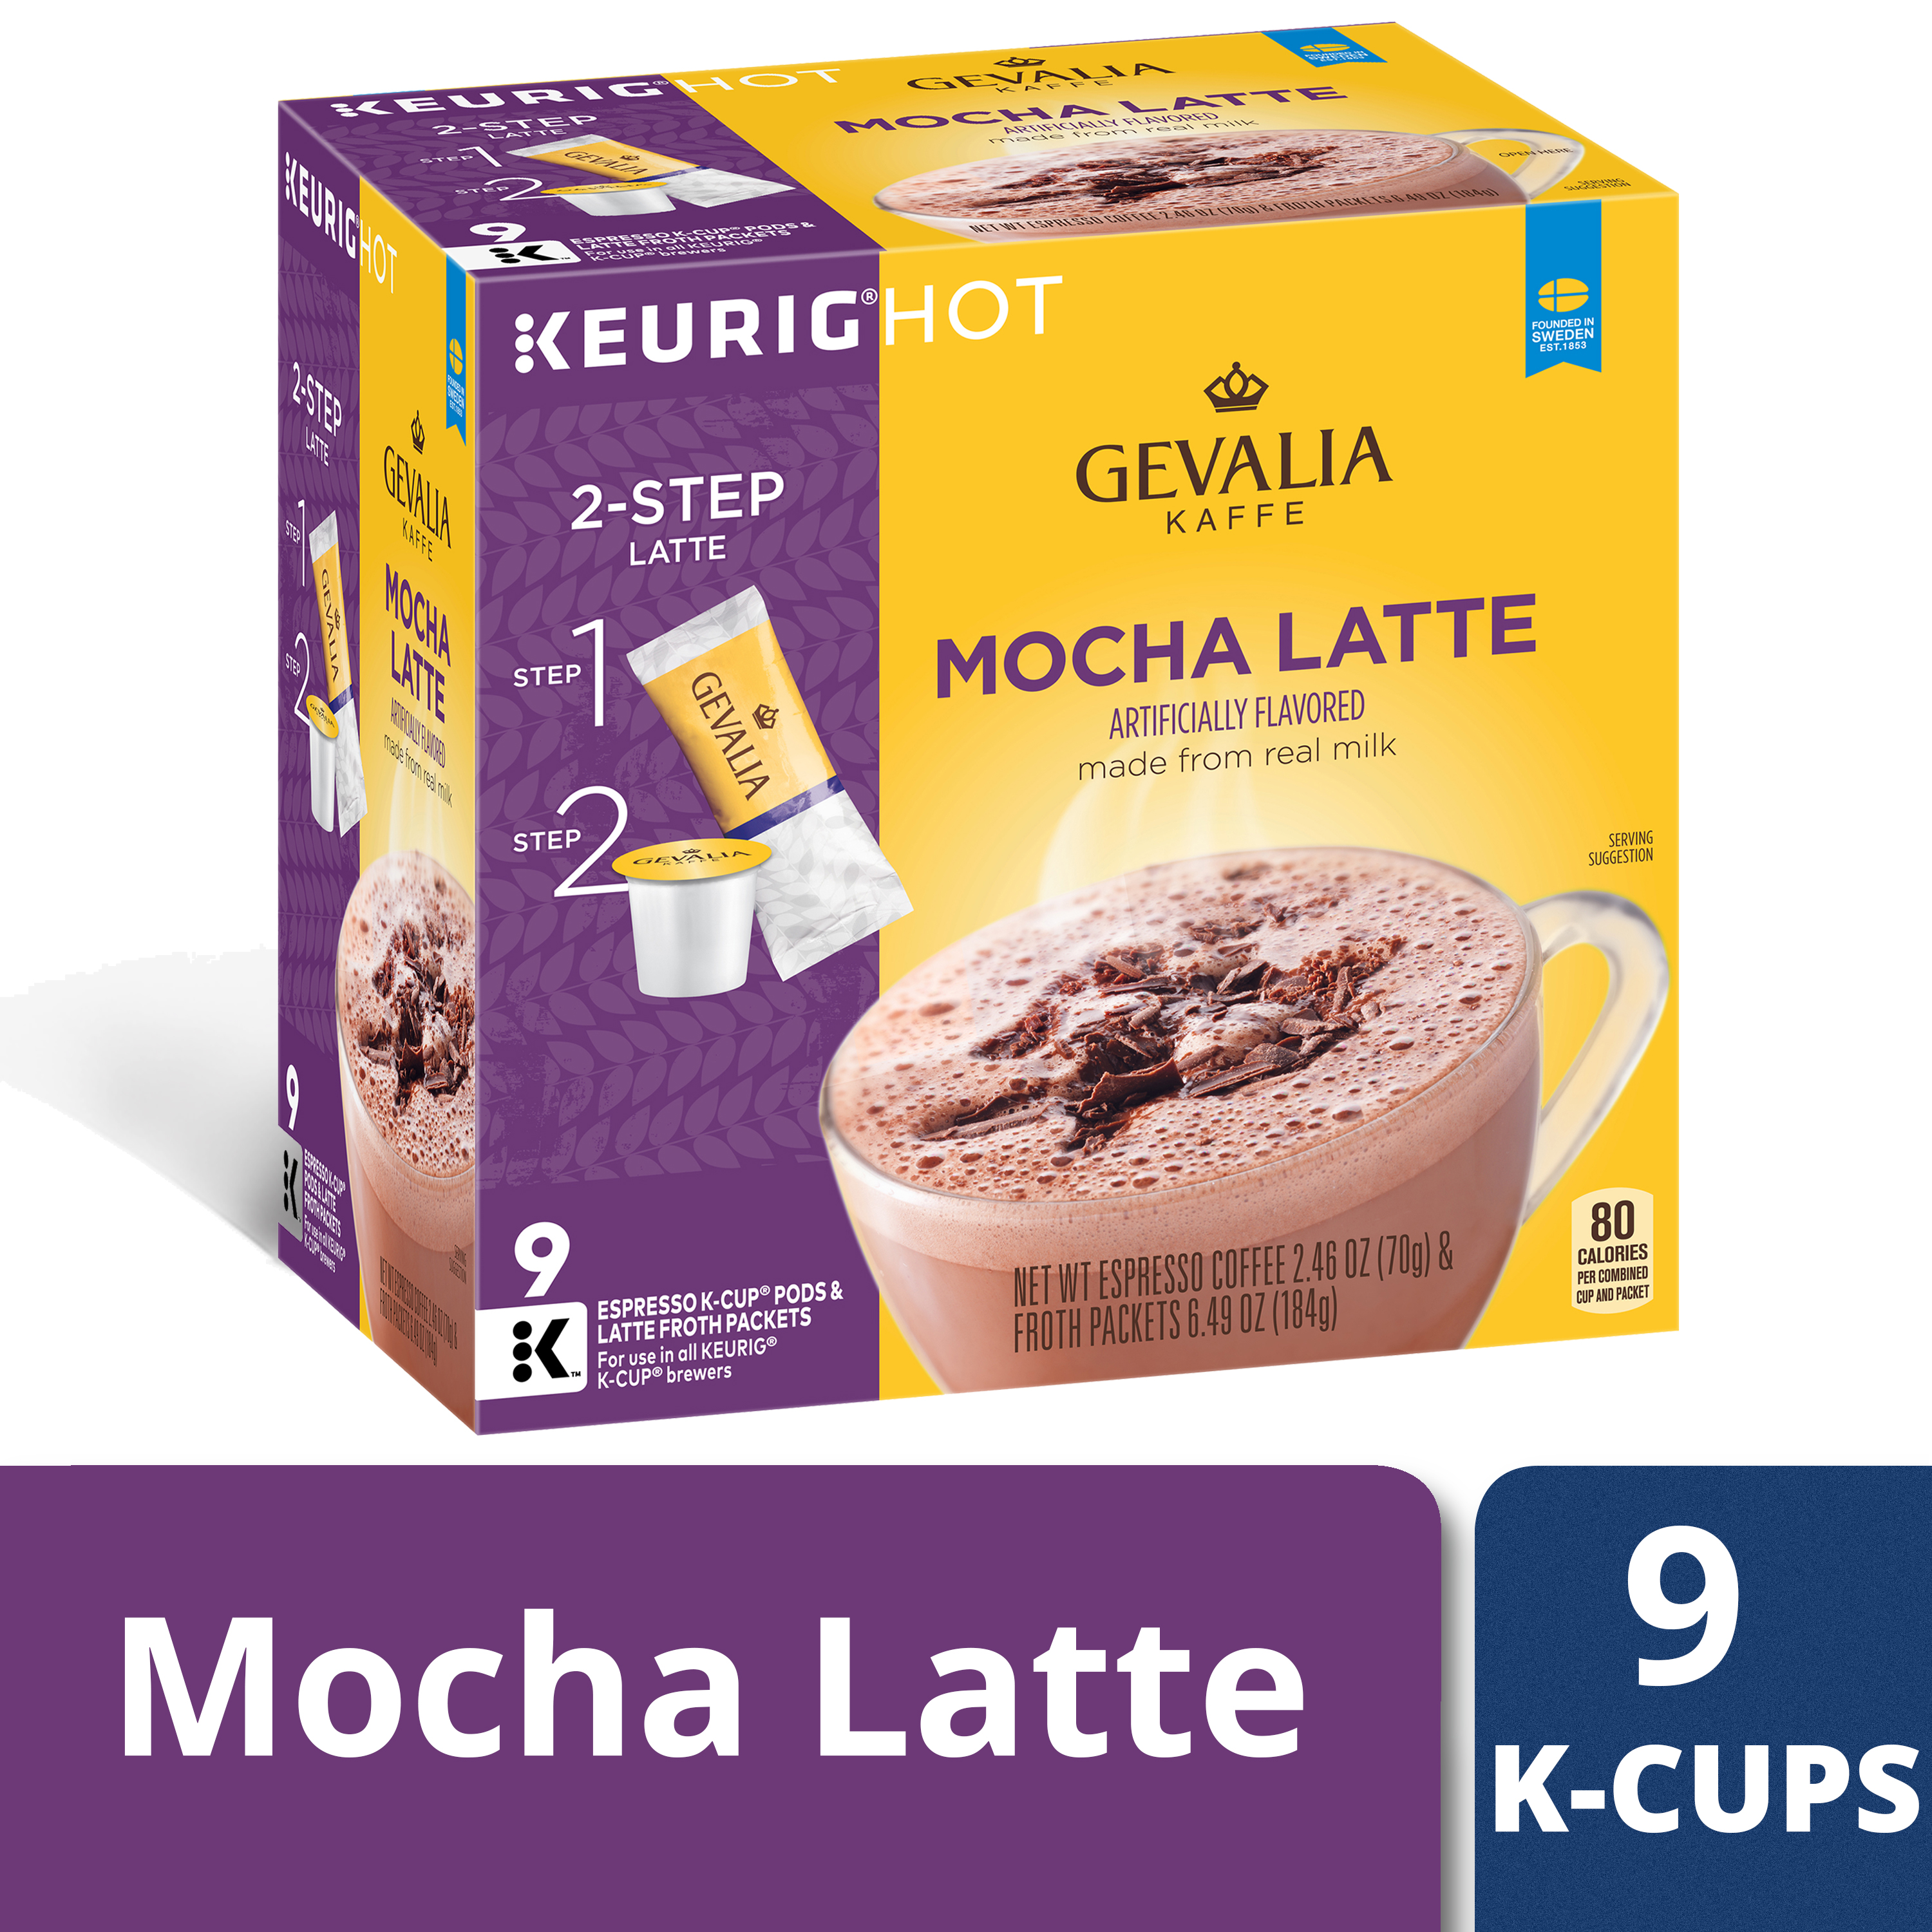 Gevalia Mocha Latte Espresso Coffee K-Cup Pods & Froth Packets 9 ct Box